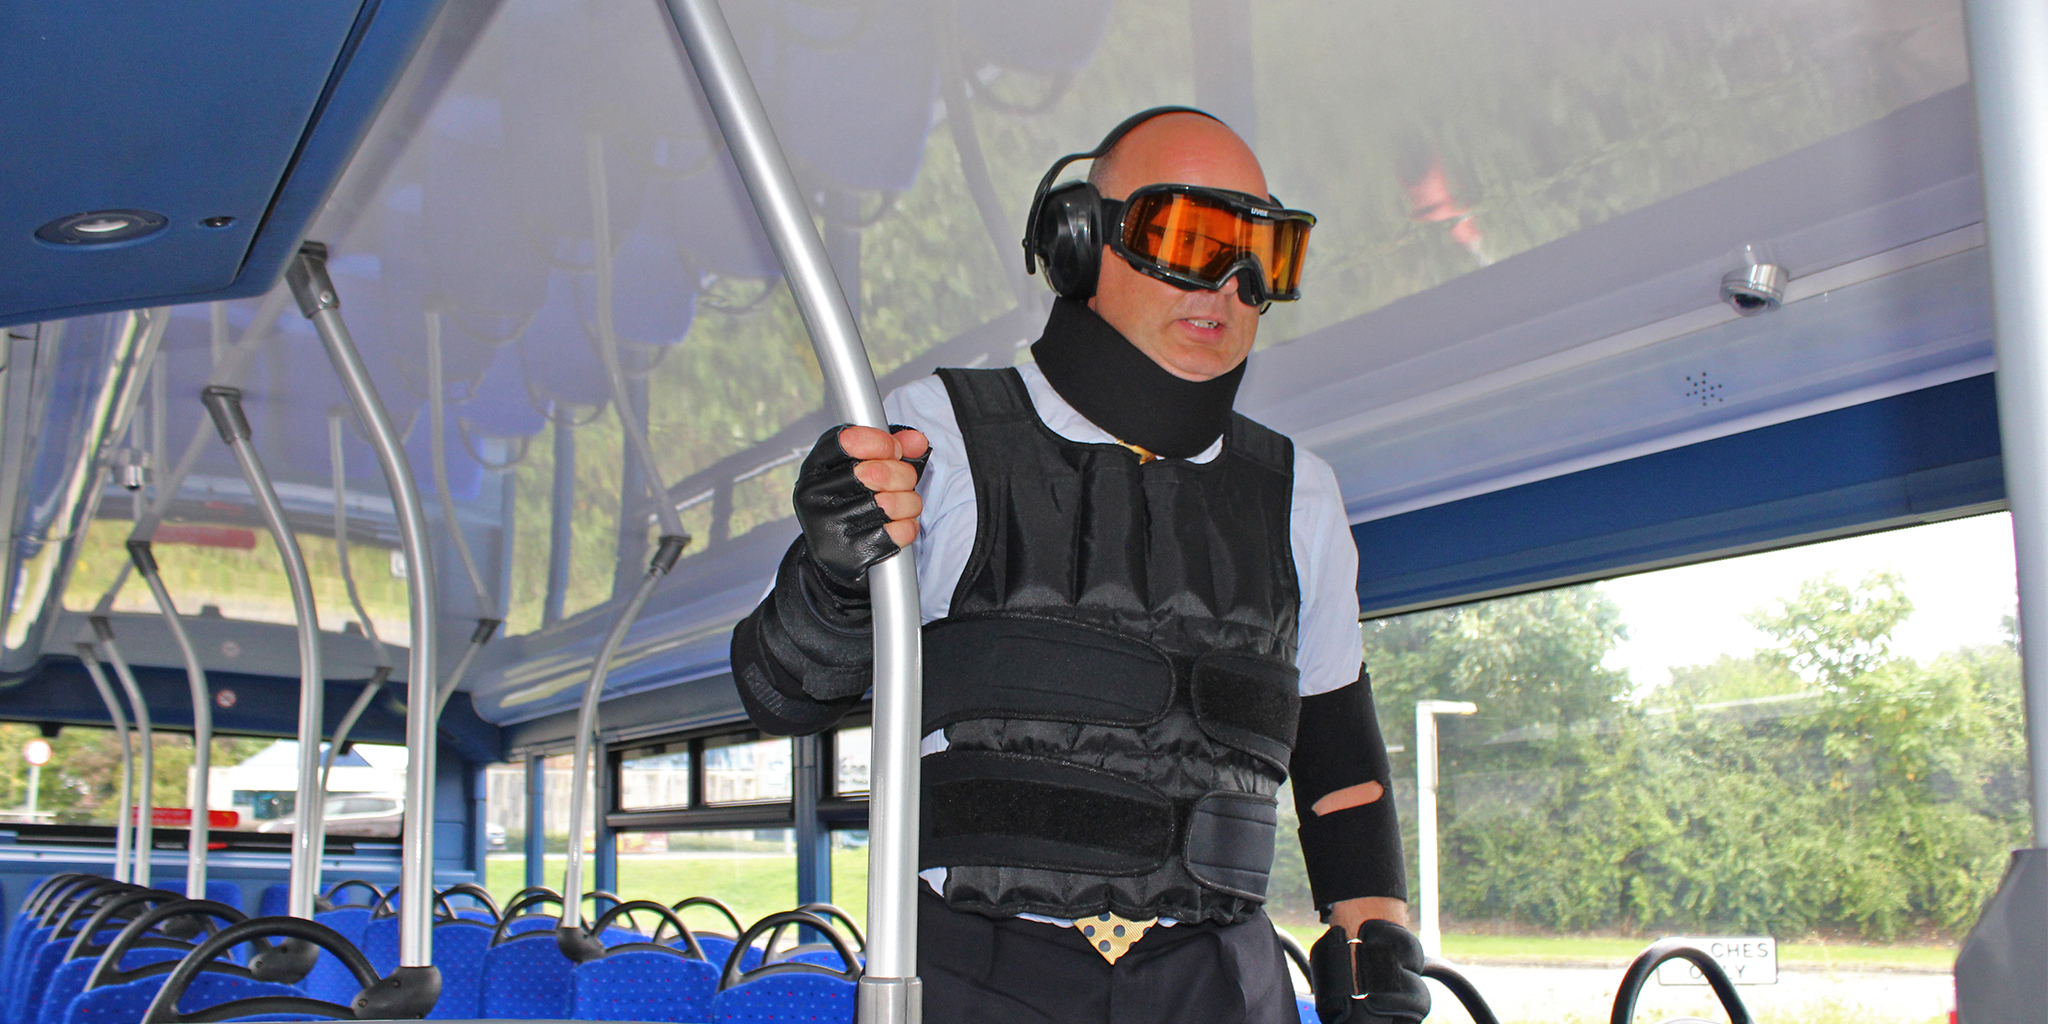 Photo of morebus managing director in age simulation suit